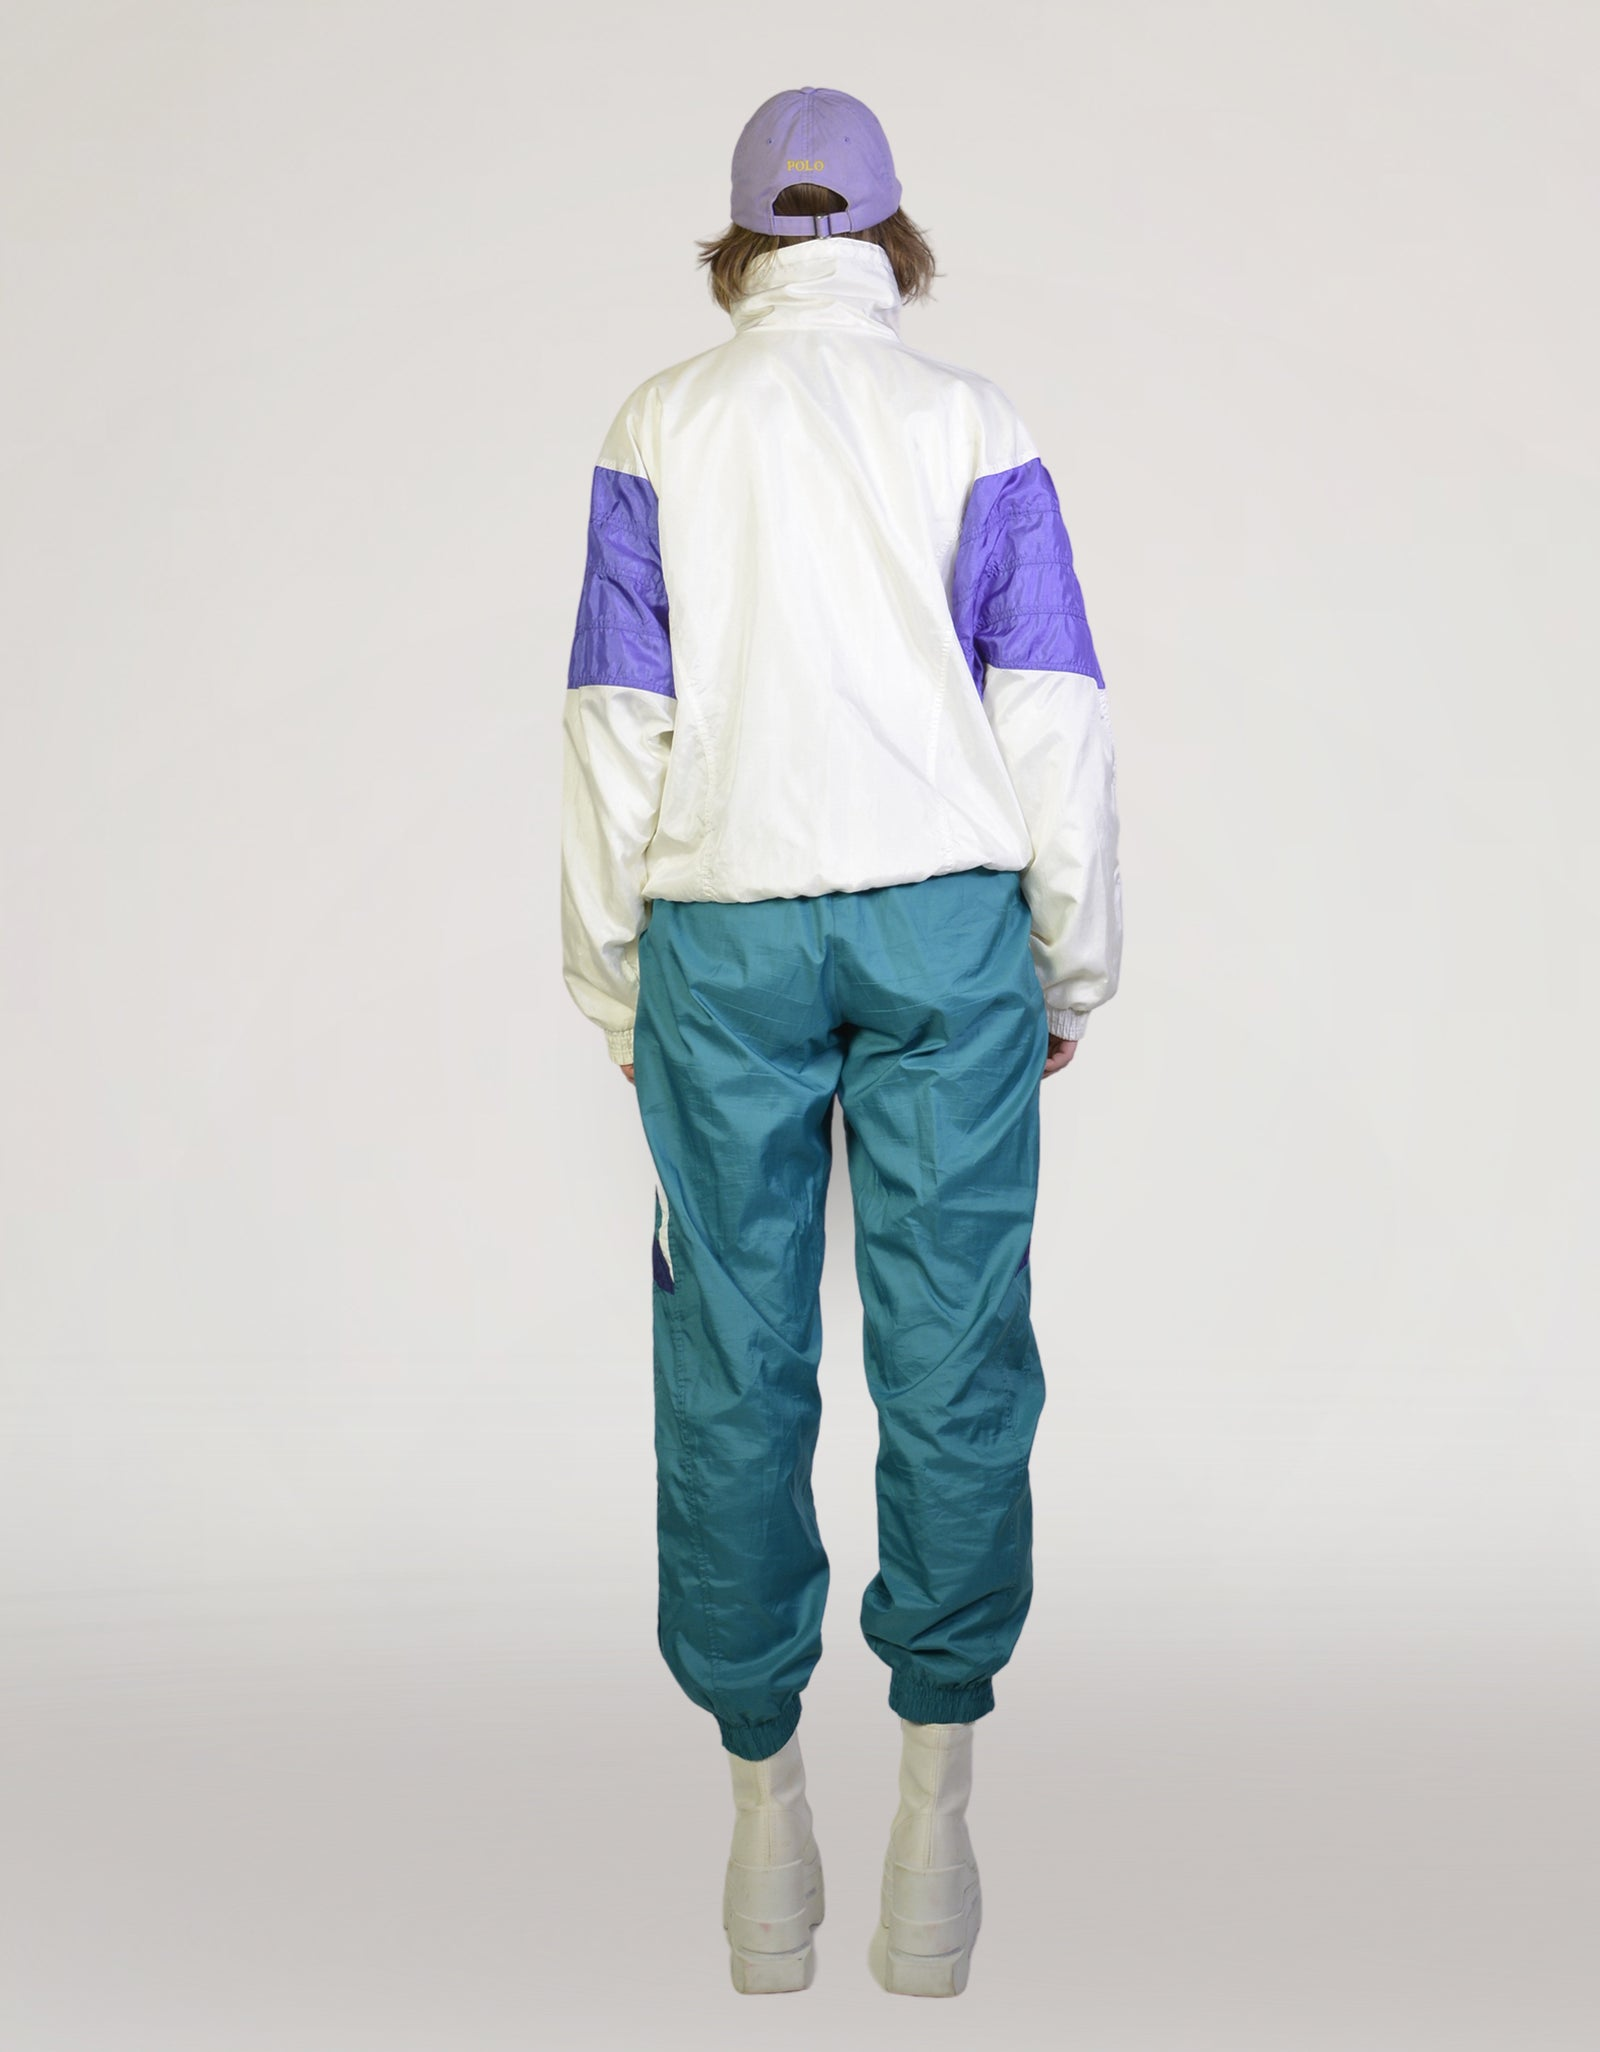 90s training jacket - PICKNWEIGHT - VINTAGE KILO STORE